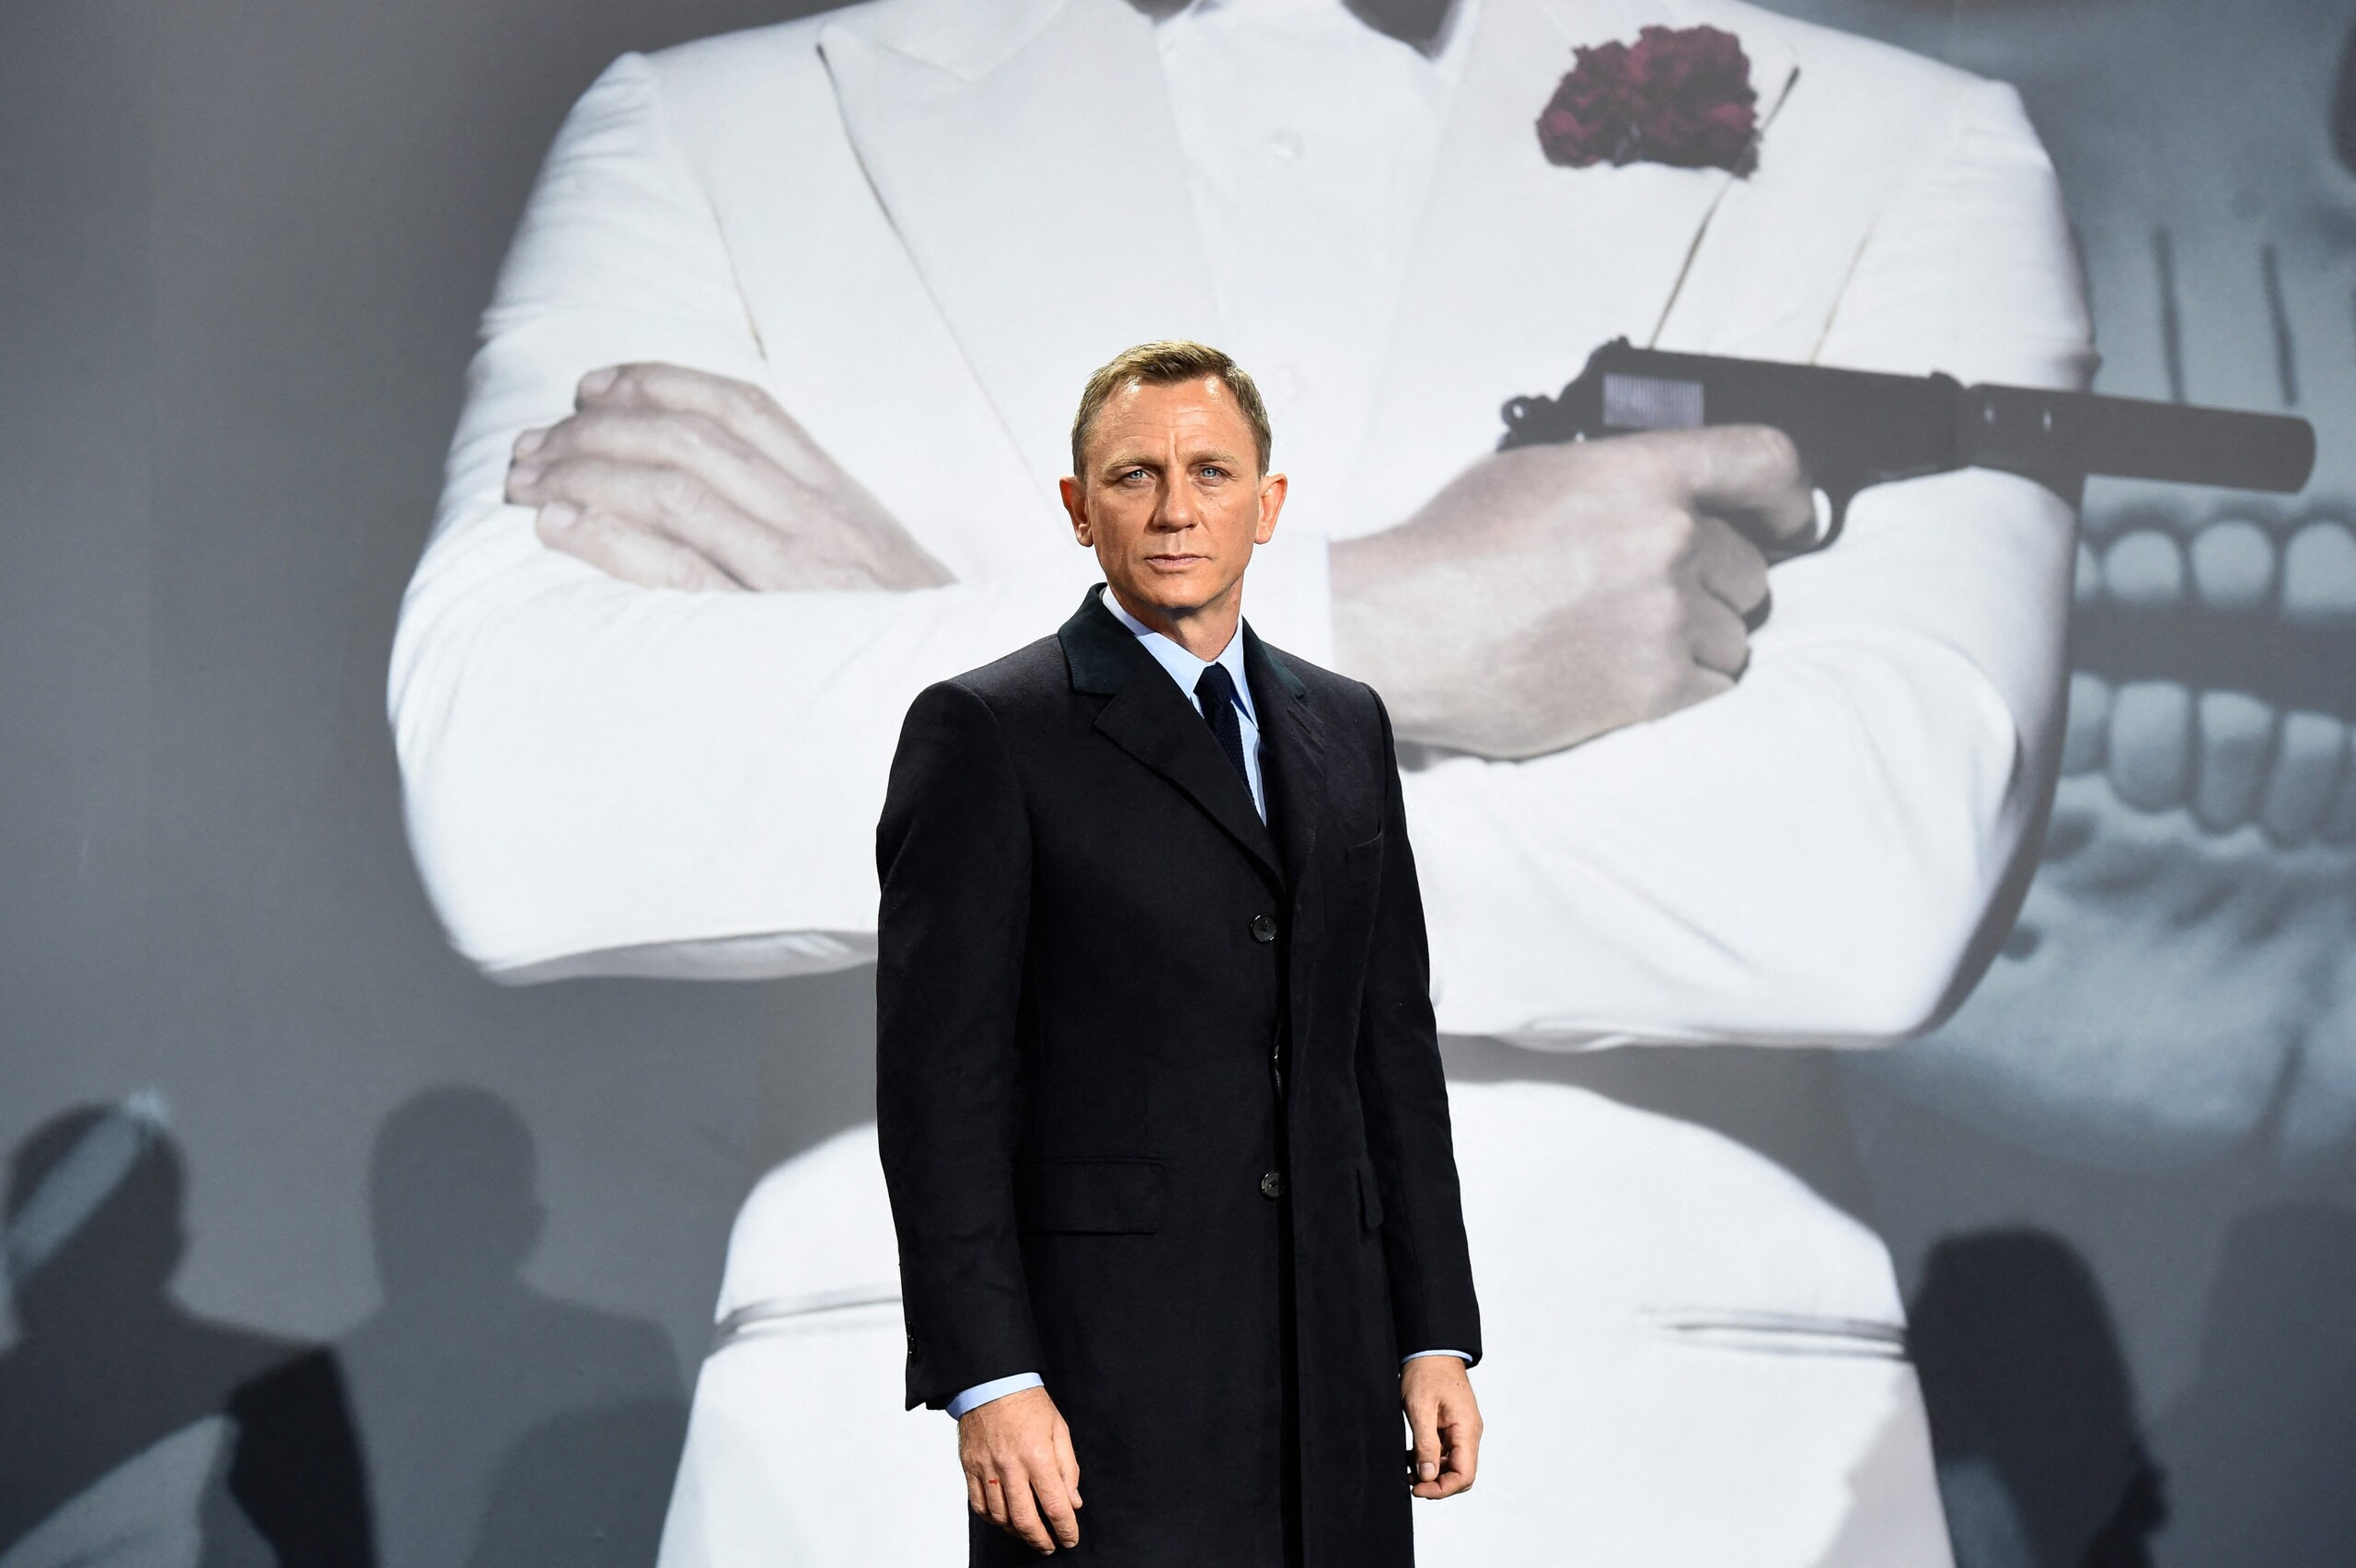 """The new James Bond shocks the CinemaCon festival (""""No Time To Die"""" and Daniel Craig's latest appearance as Agent 007)"""